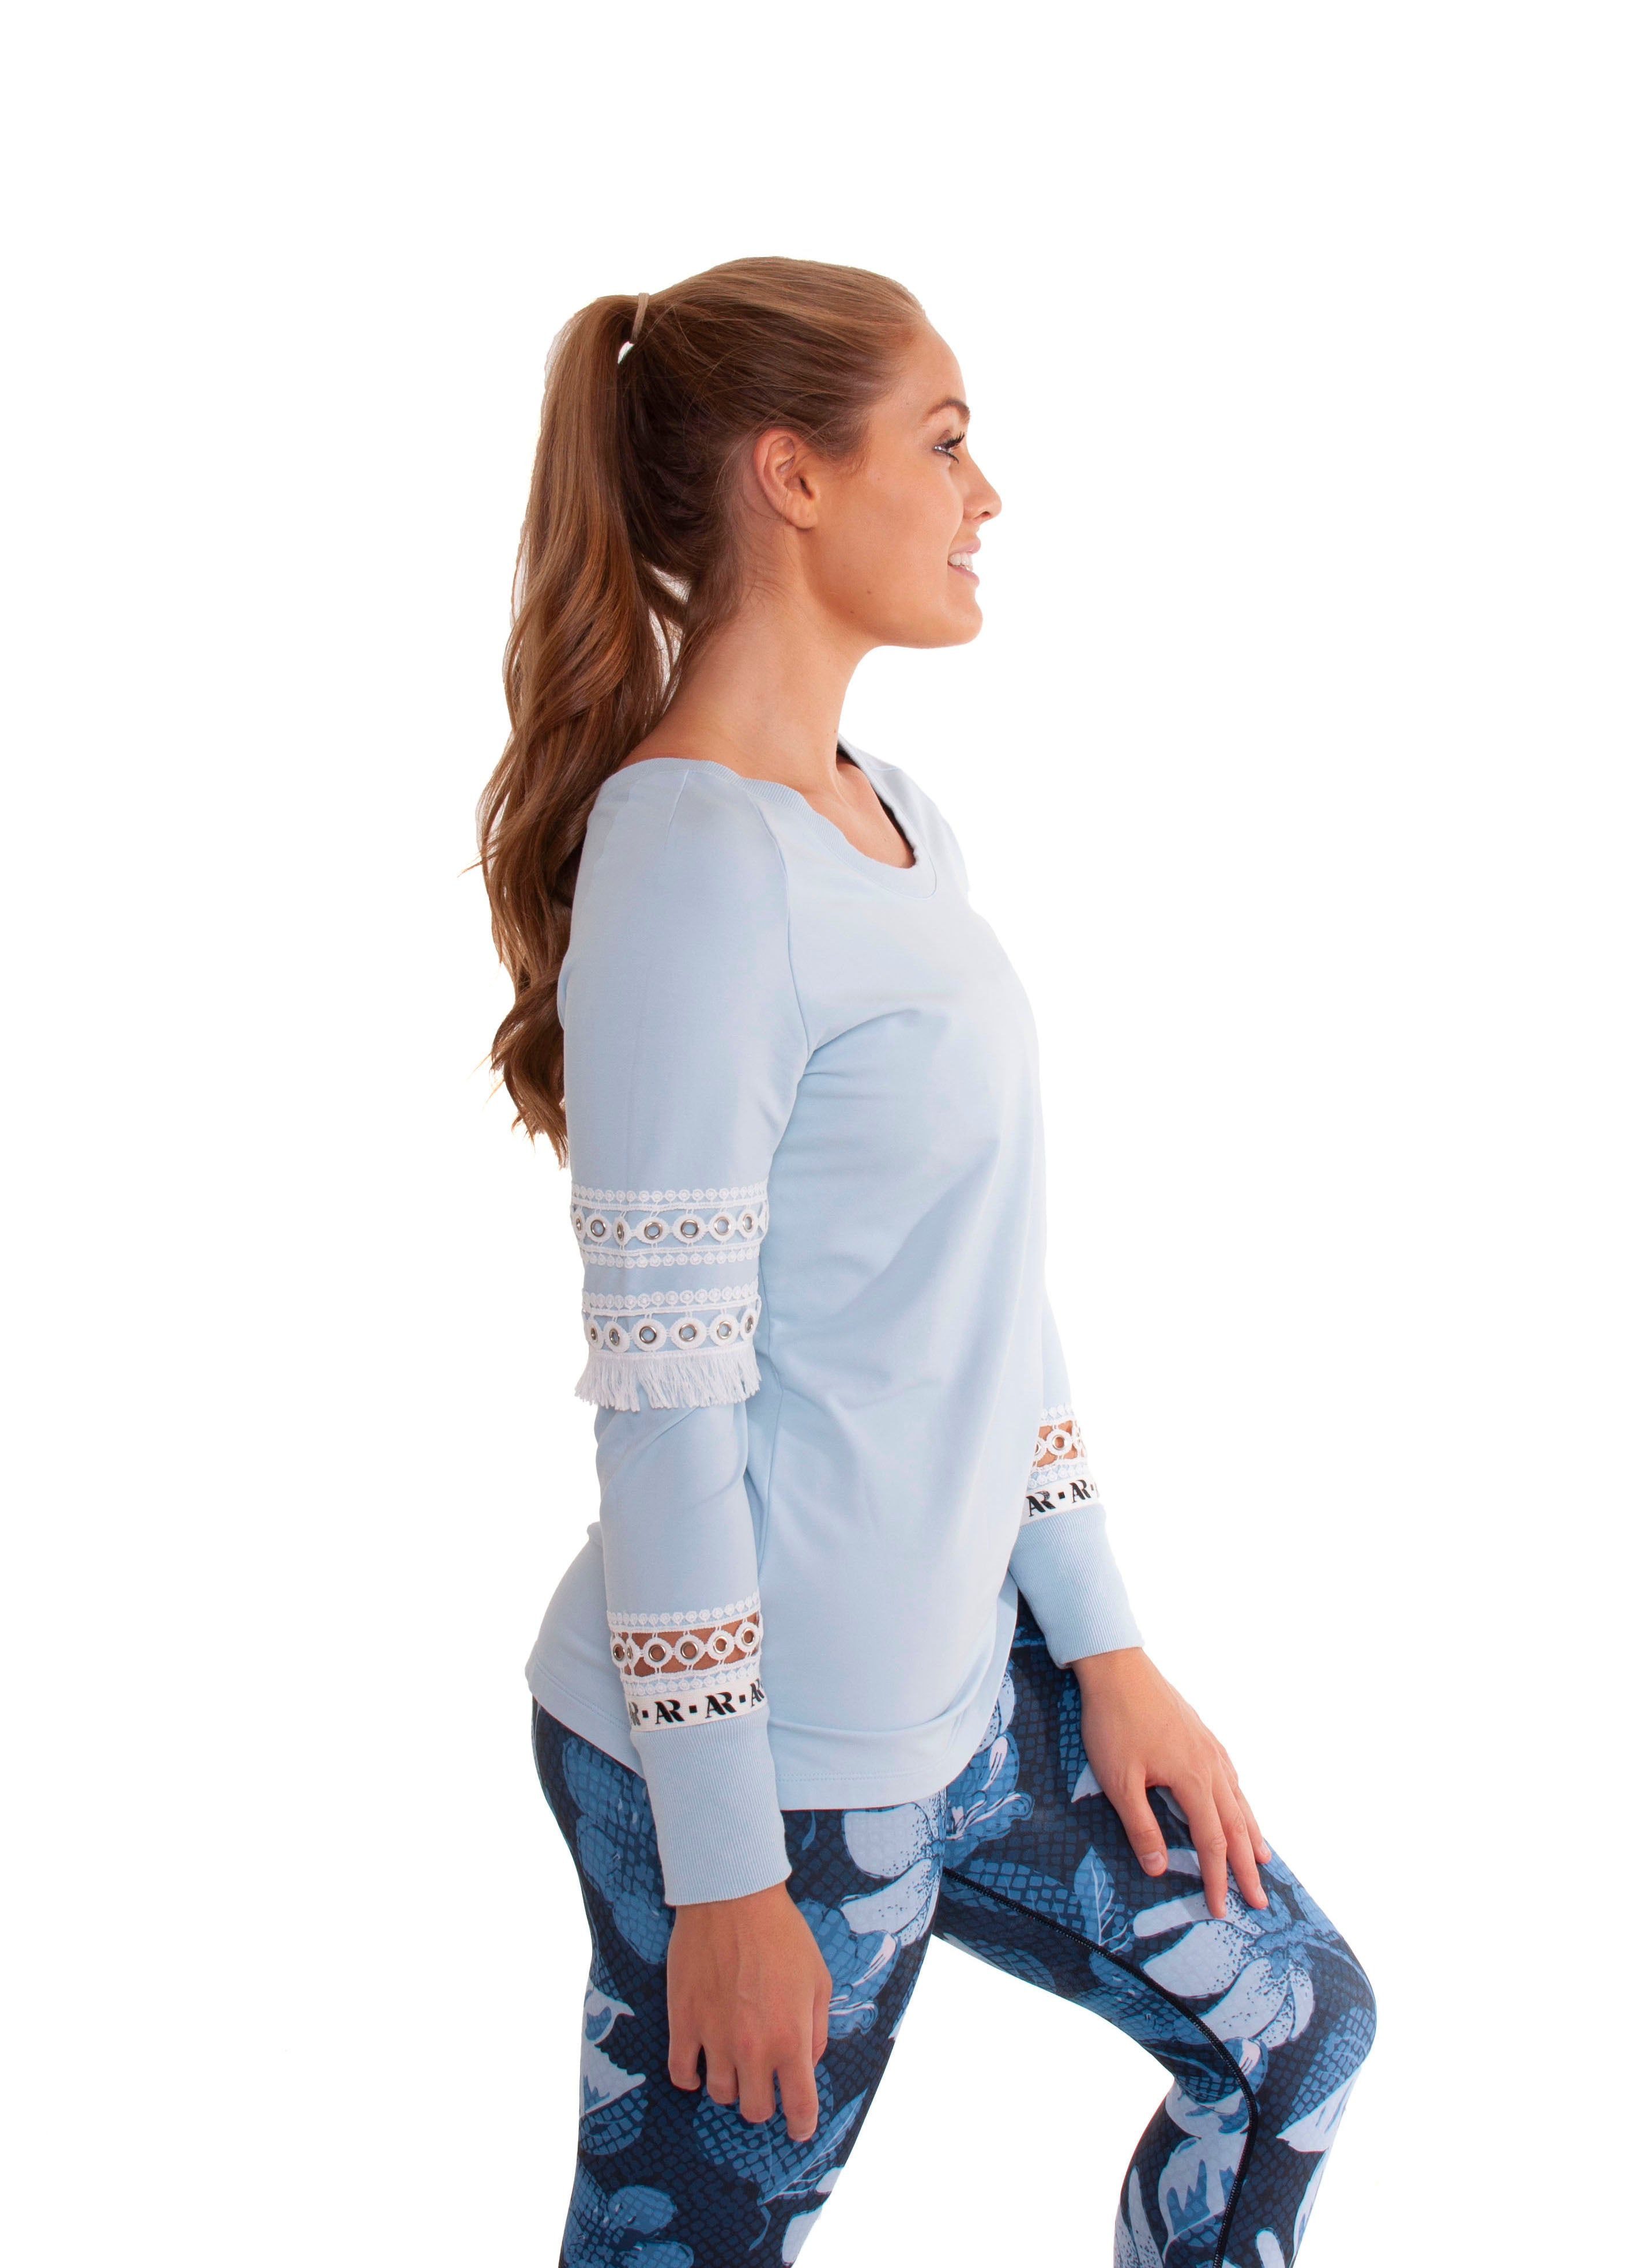 Akia Rose Activewear - Jumper - round neck blue jumper with mesh panels in the sleeve